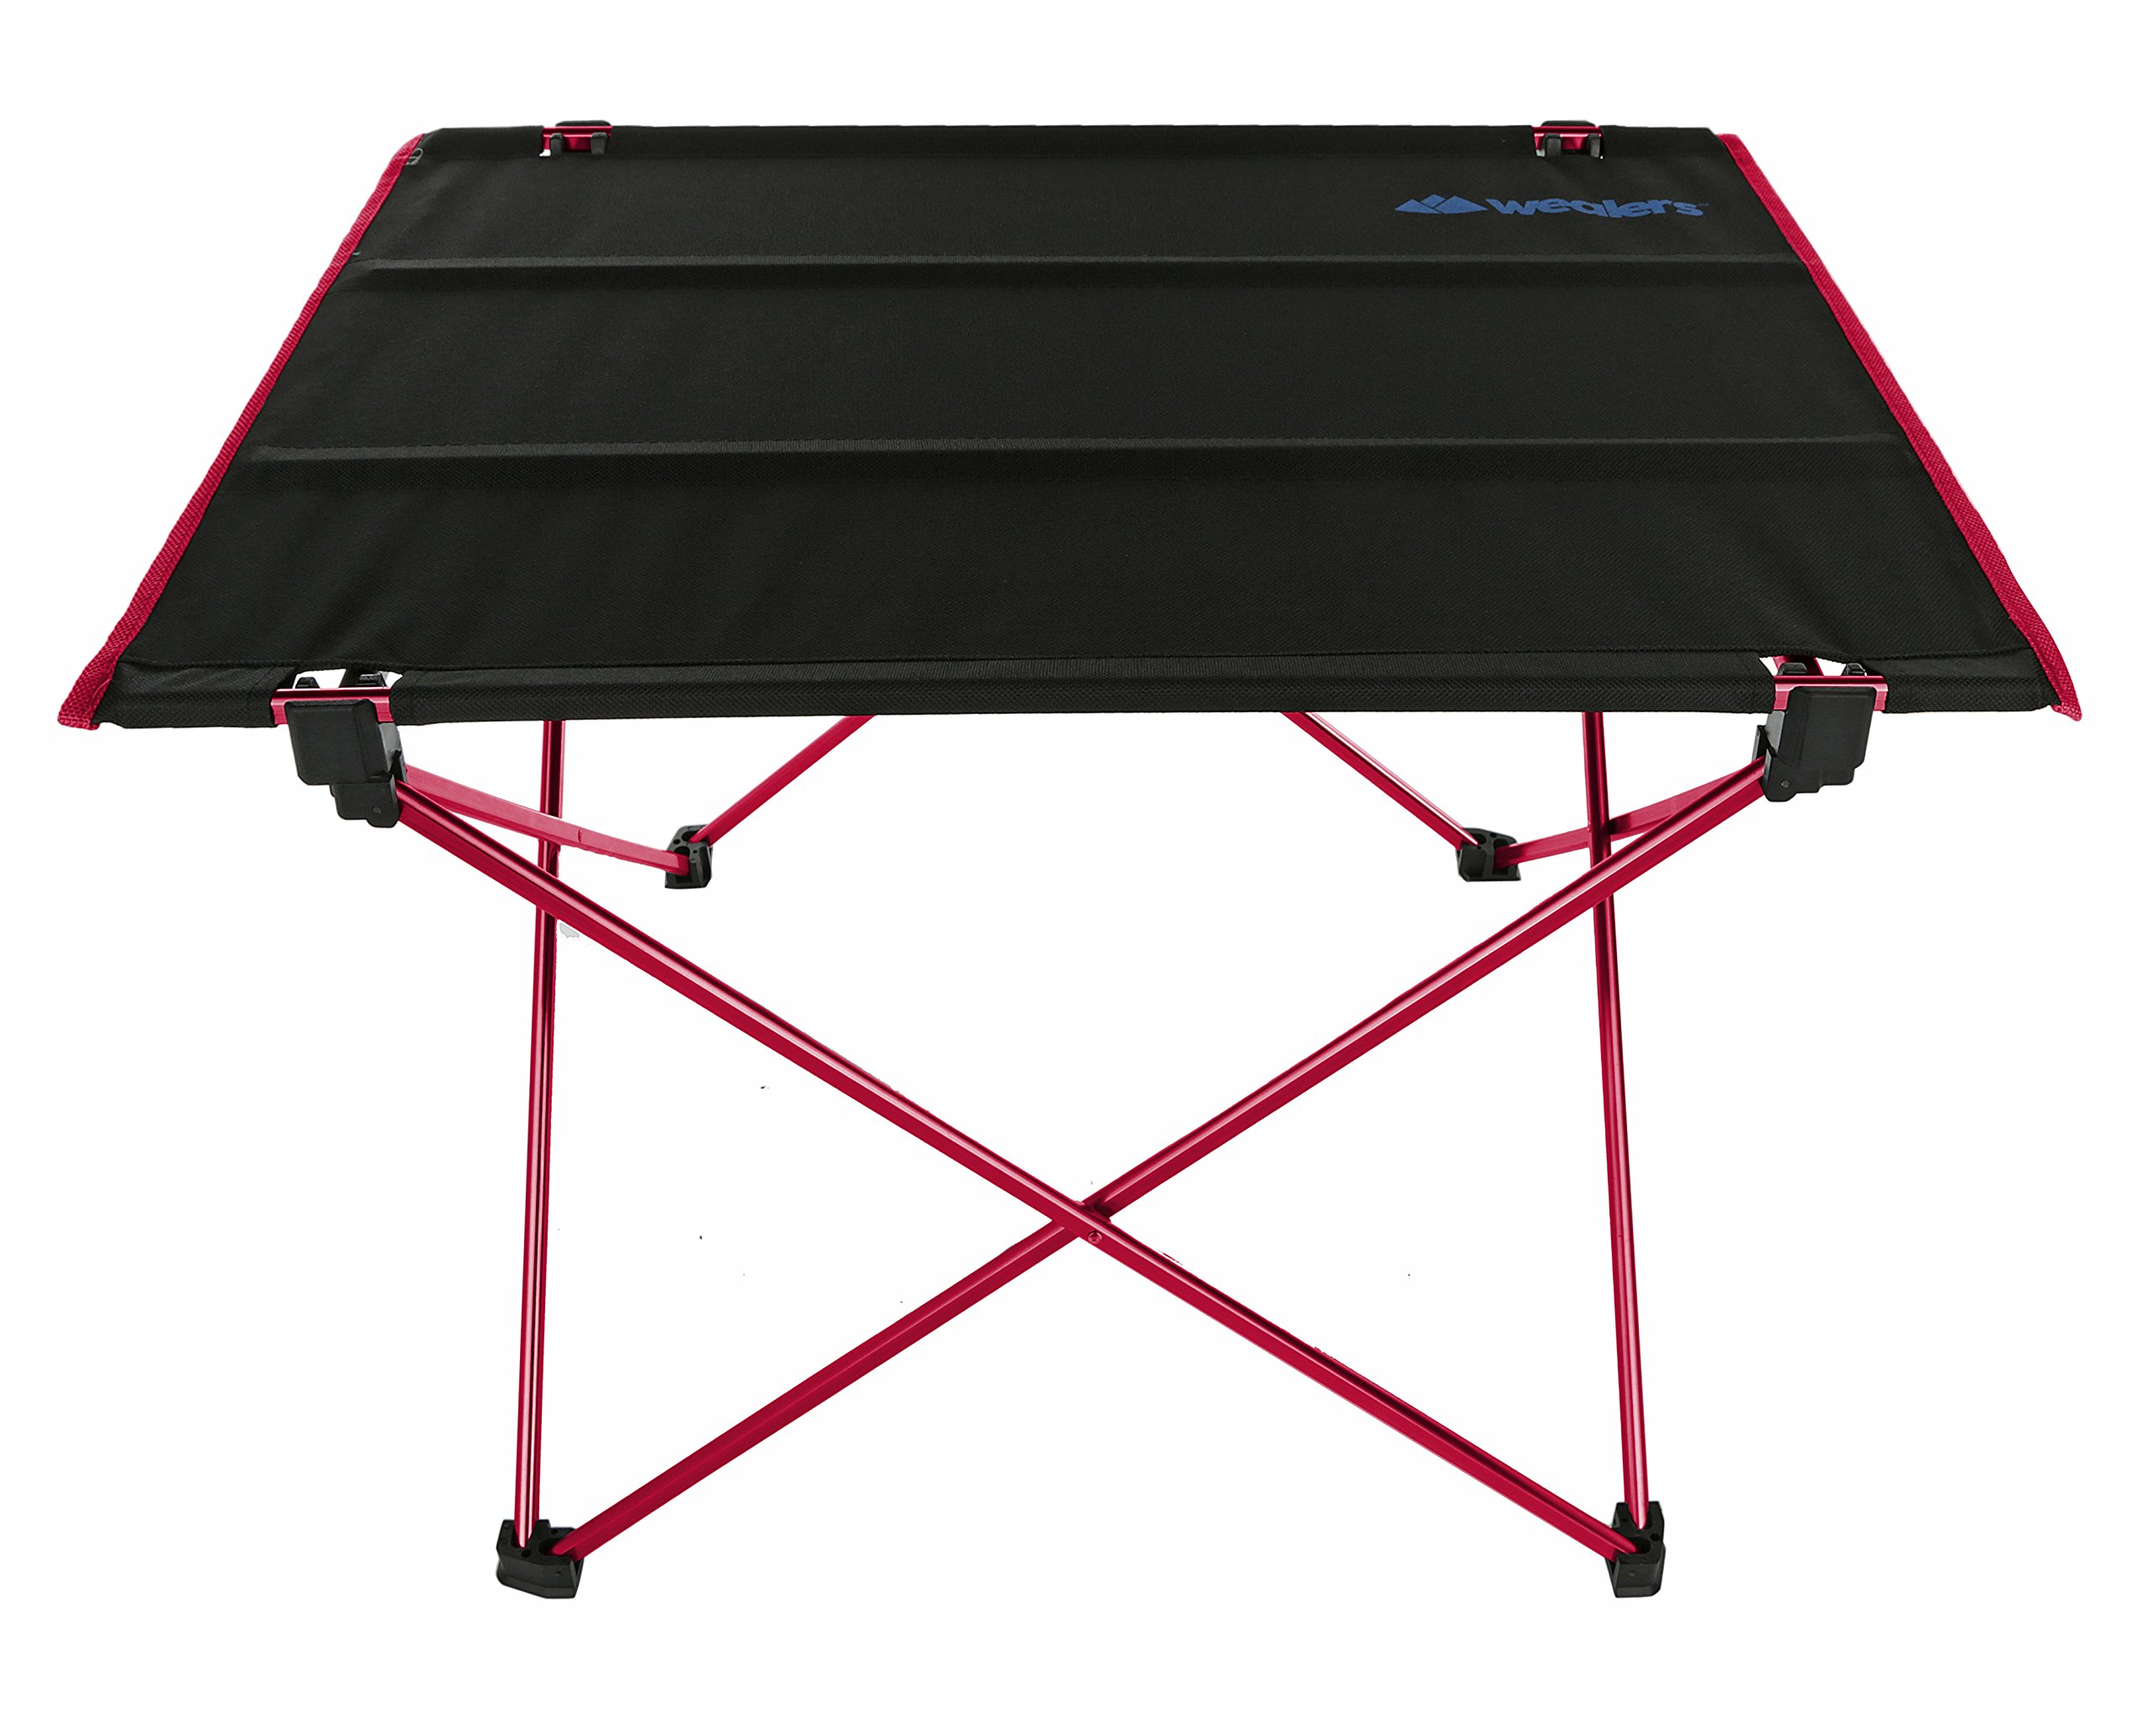 portable folding picnic table in a bag collapsible lightweight travel beach 638170300202 ebay. Black Bedroom Furniture Sets. Home Design Ideas